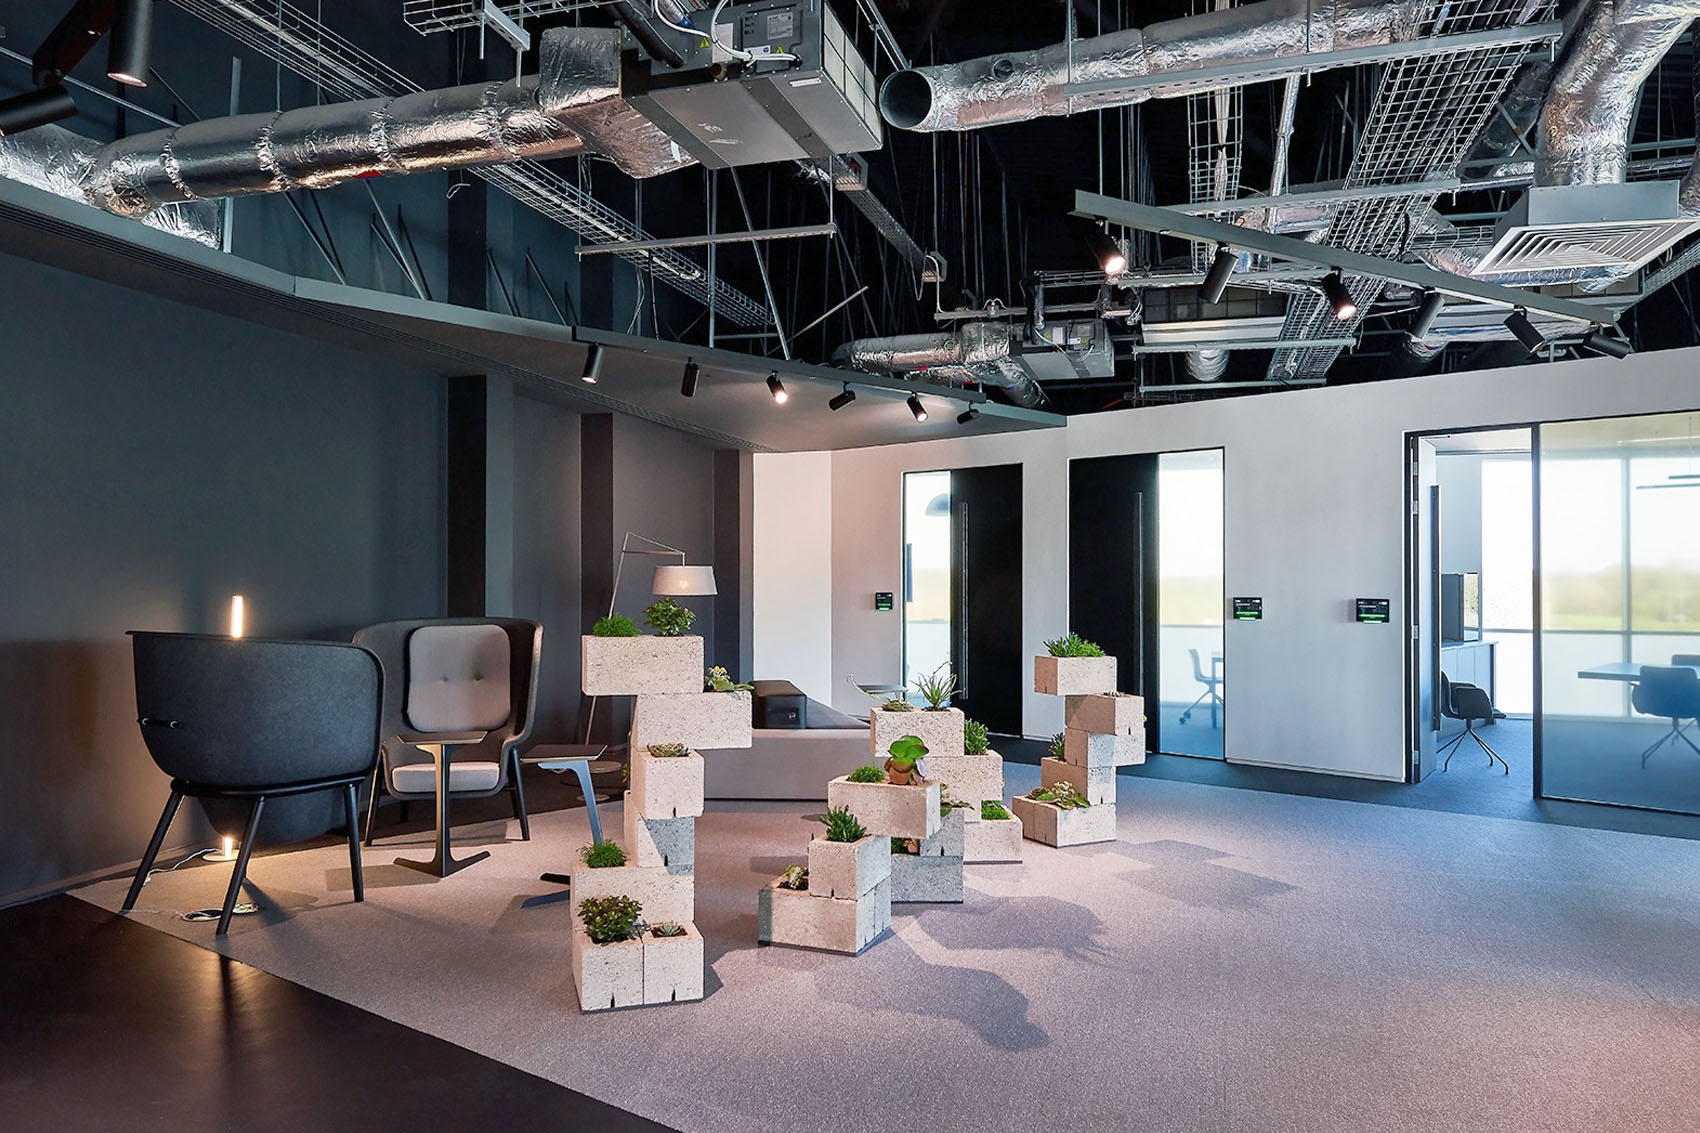 Gymshark office design by Oktra featuring Pod chairs by De Vorm